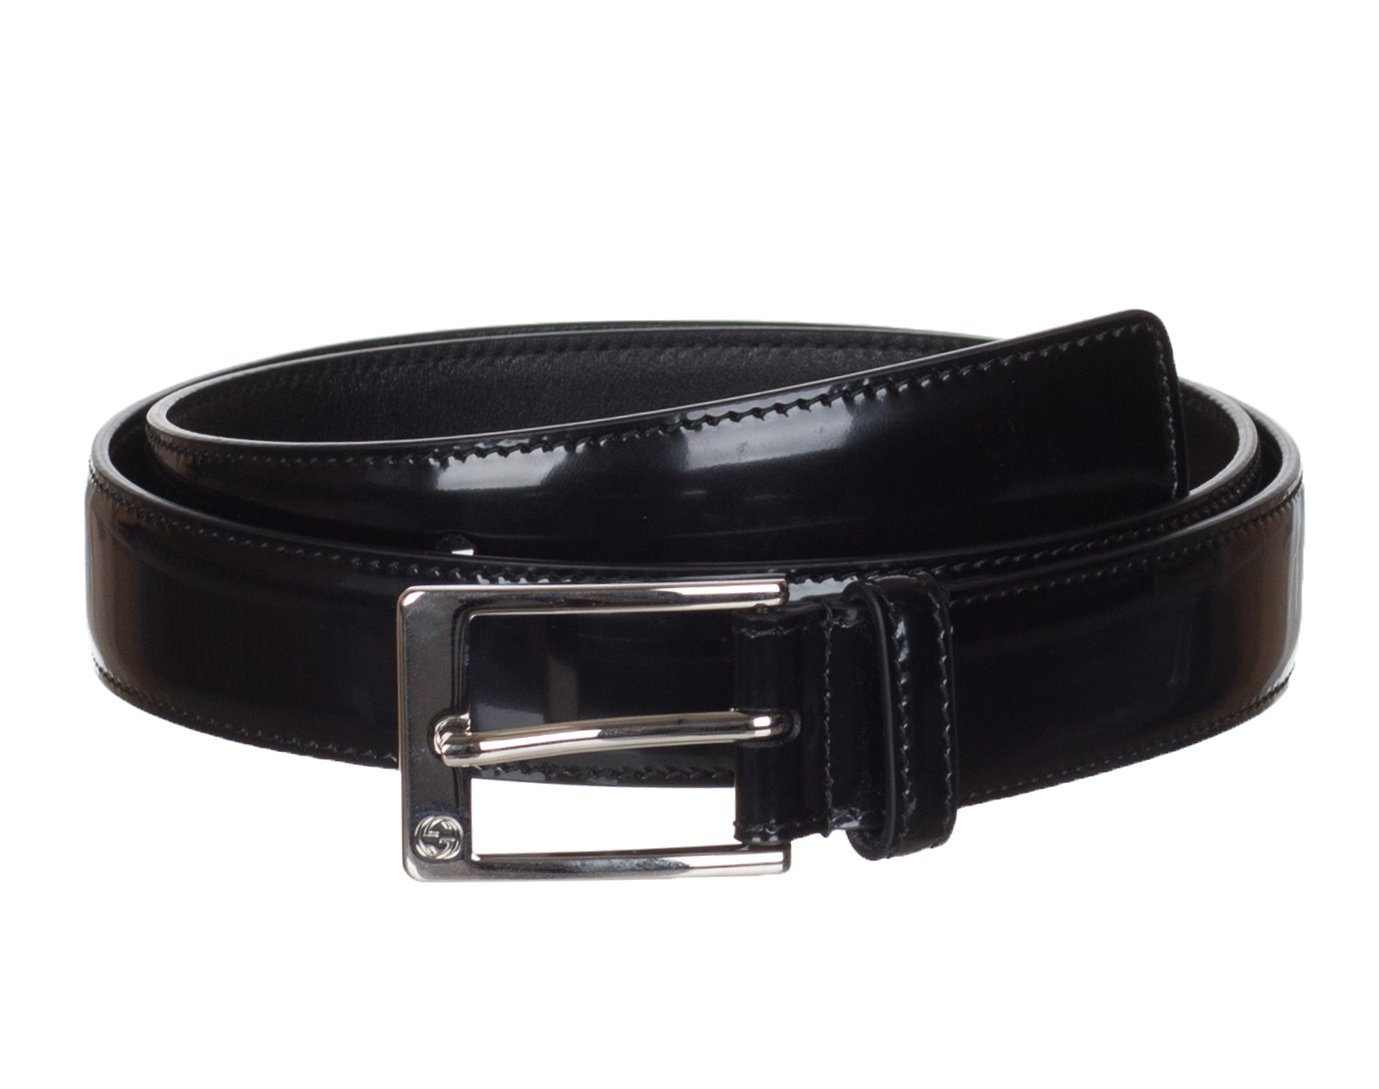 Gucci Men's GG Black Shiny Leather Square Buckle Belt, 36, Black